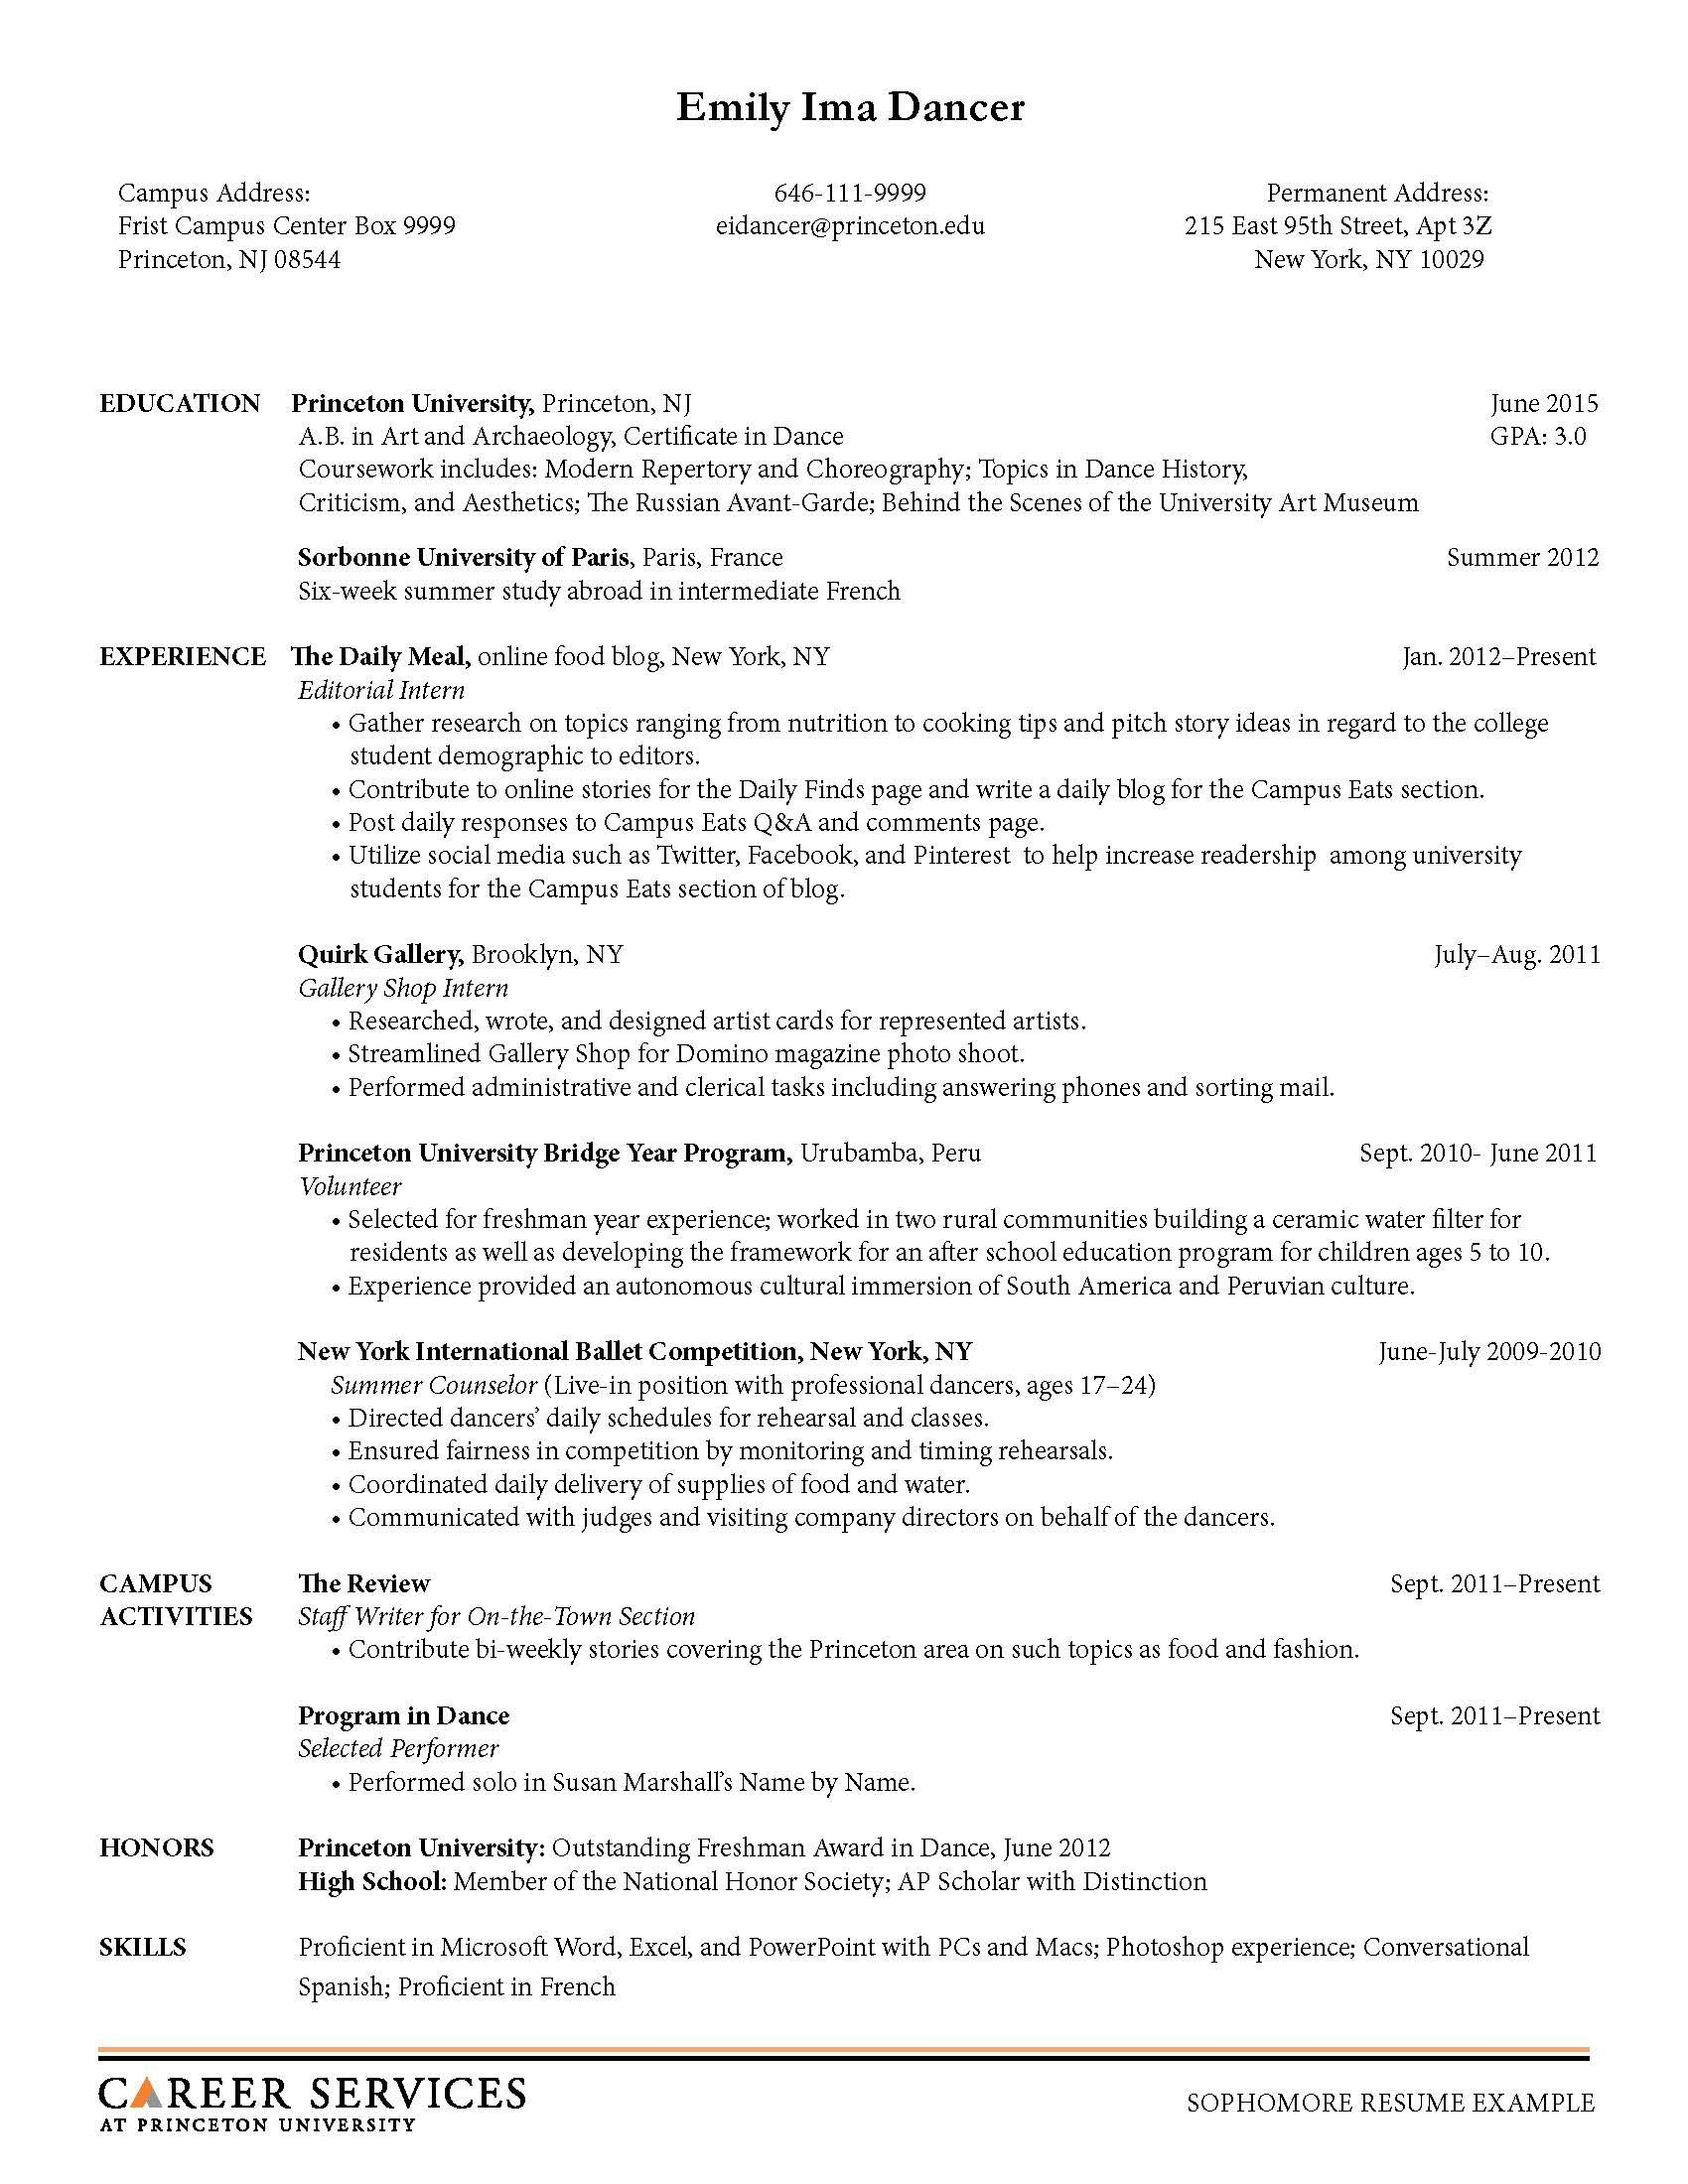 Picnictoimpeachus  Splendid Sample Resume Resume And Career On Pinterest With Hot Help Making A Resume Besides Modern Resume Template Free Furthermore Server Resumes With Alluring Updated Resume Also Lpn Resume Template In Addition Busser Resume And Certified Resume Writer As Well As Formatting A Resume Additionally High School Resume Example From Pinterestcom With Picnictoimpeachus  Hot Sample Resume Resume And Career On Pinterest With Alluring Help Making A Resume Besides Modern Resume Template Free Furthermore Server Resumes And Splendid Updated Resume Also Lpn Resume Template In Addition Busser Resume From Pinterestcom